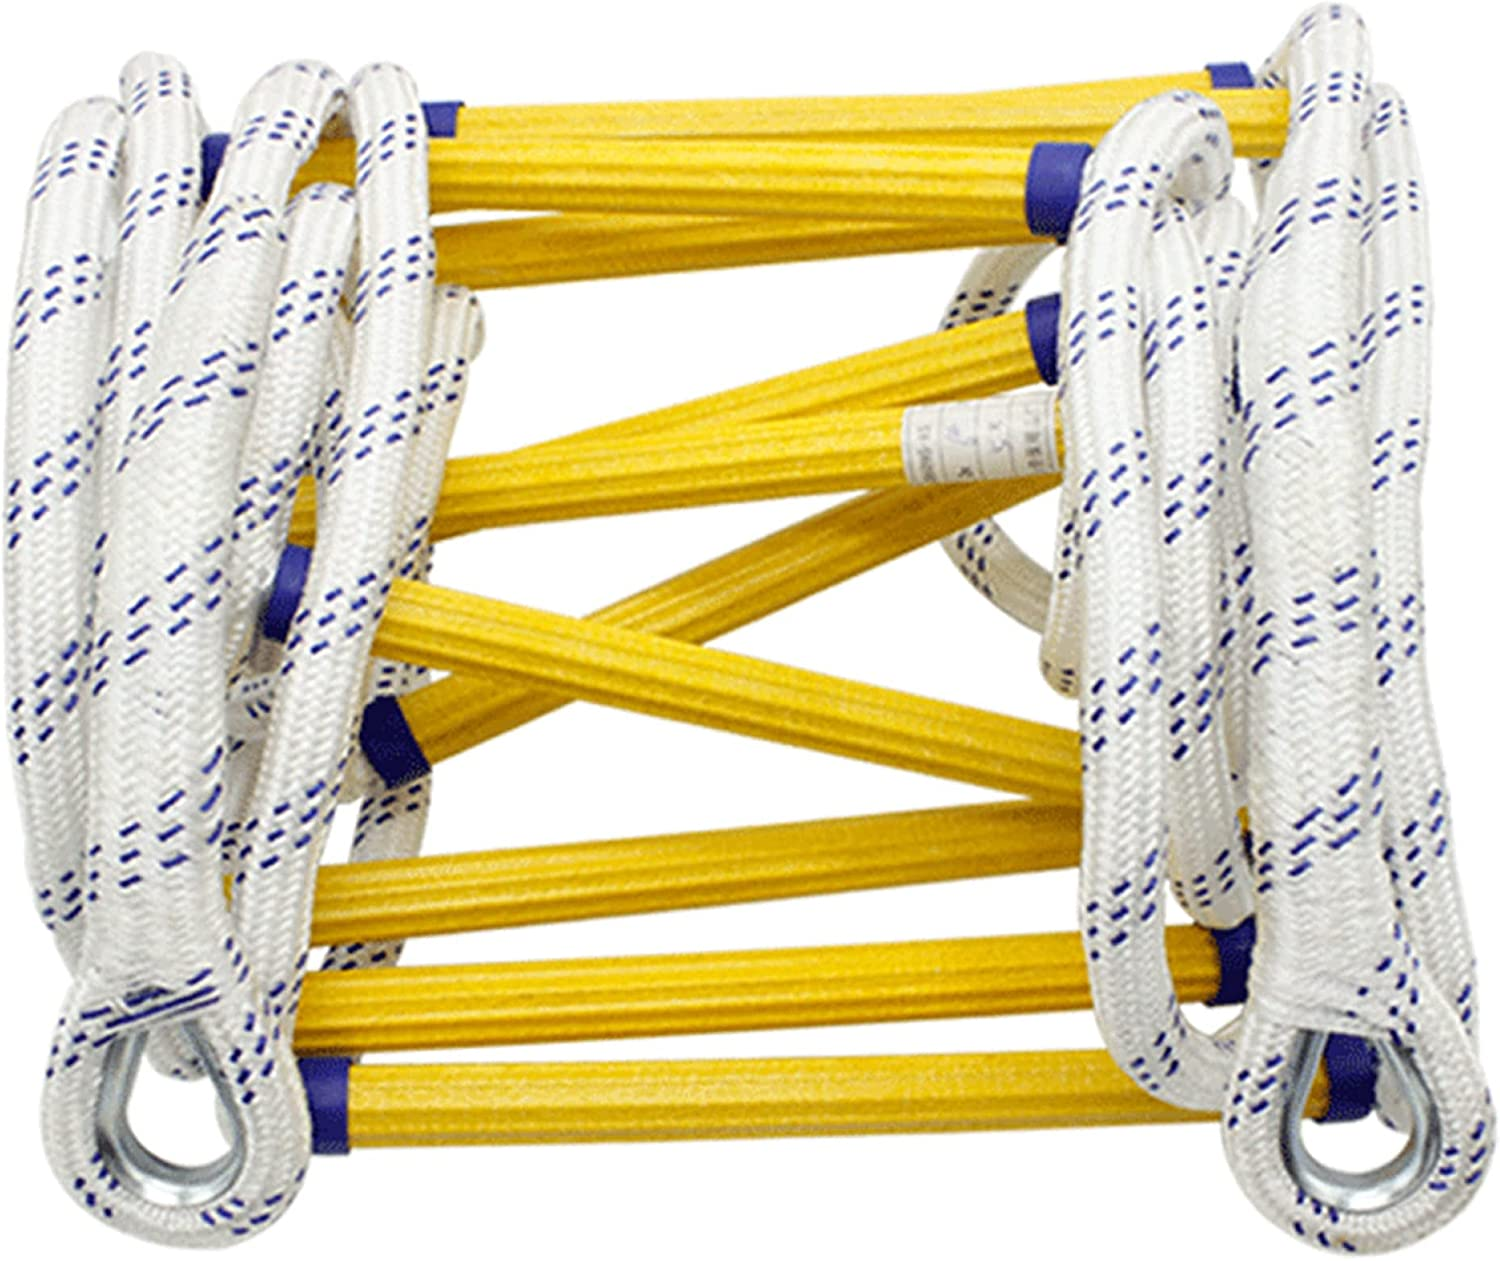 LINGOSHUN Popular shop is the lowest price challenge Rope Ladders Reusable High-Rise Detroit Mall Fire Ladde Escape